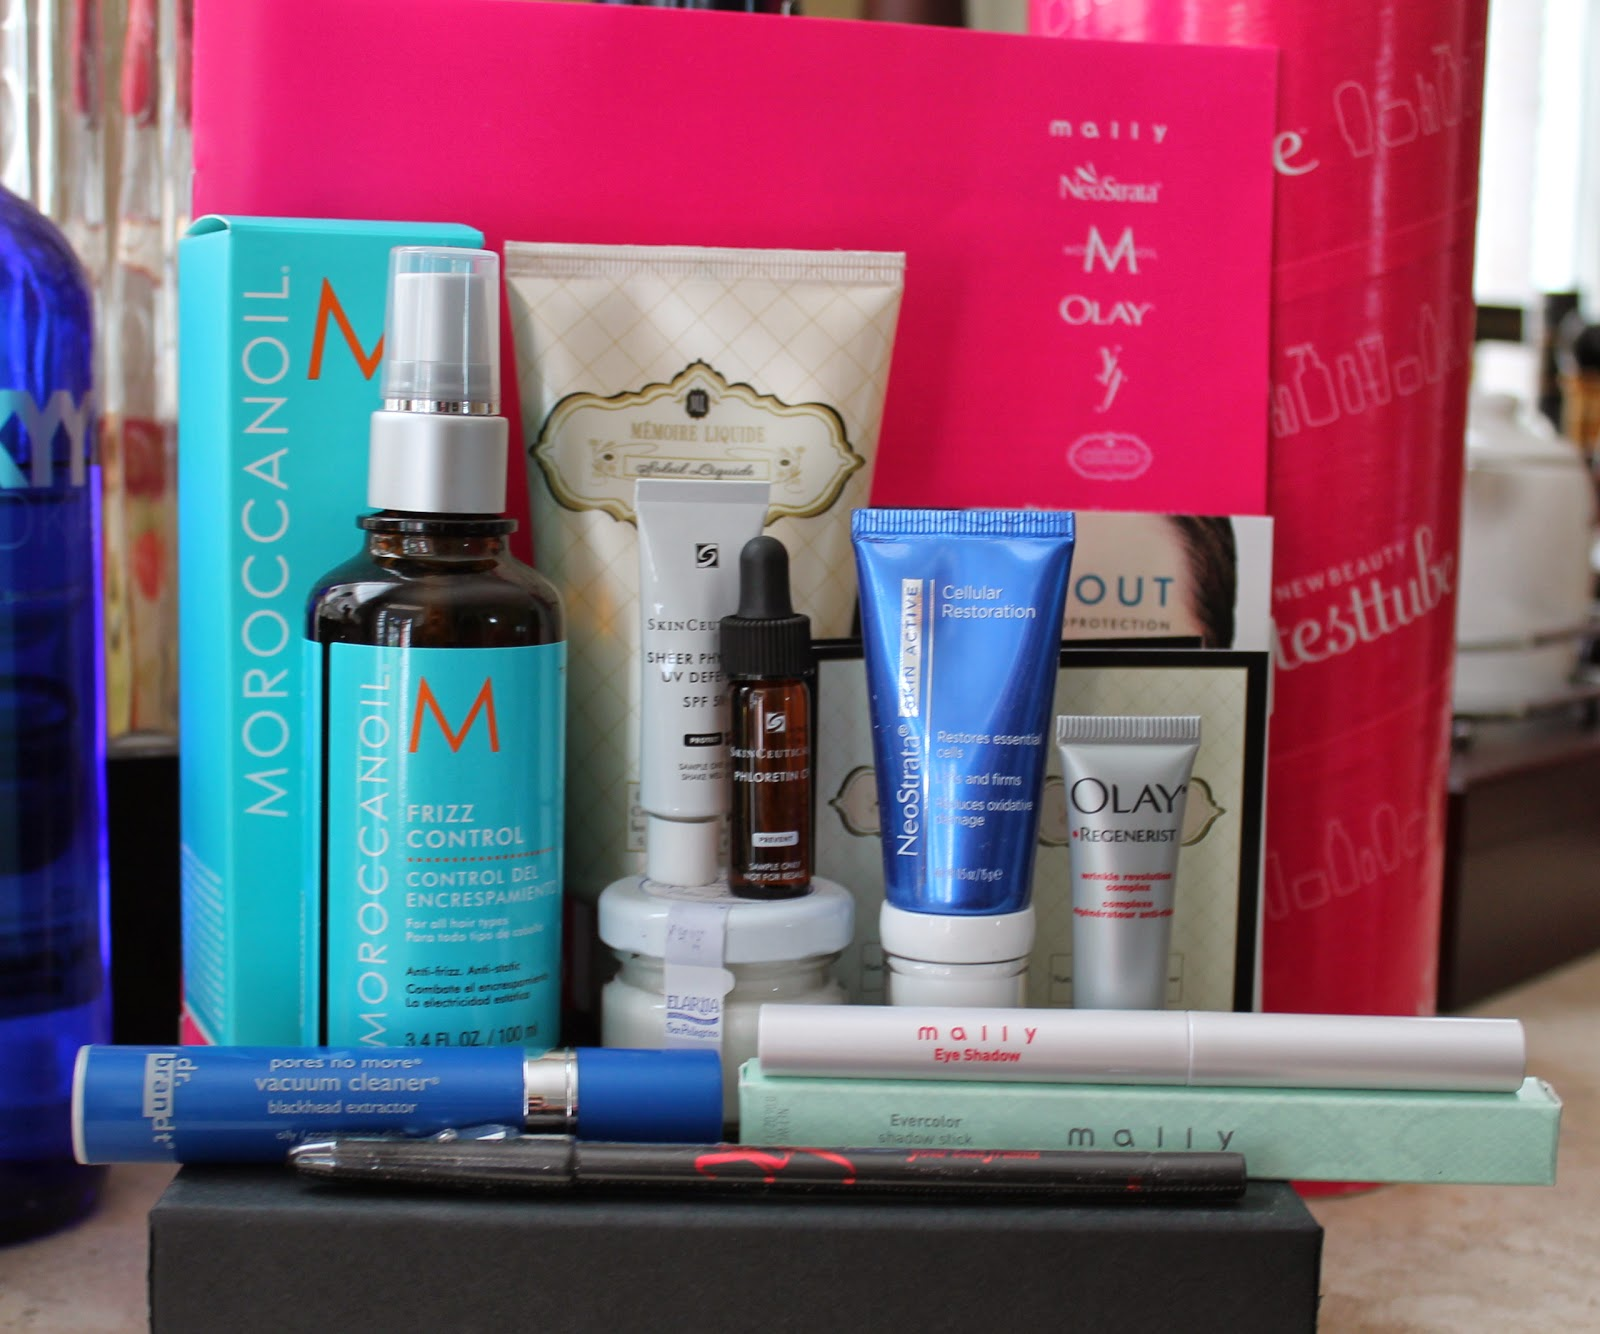 smitten in cleveland may sample society new beauty